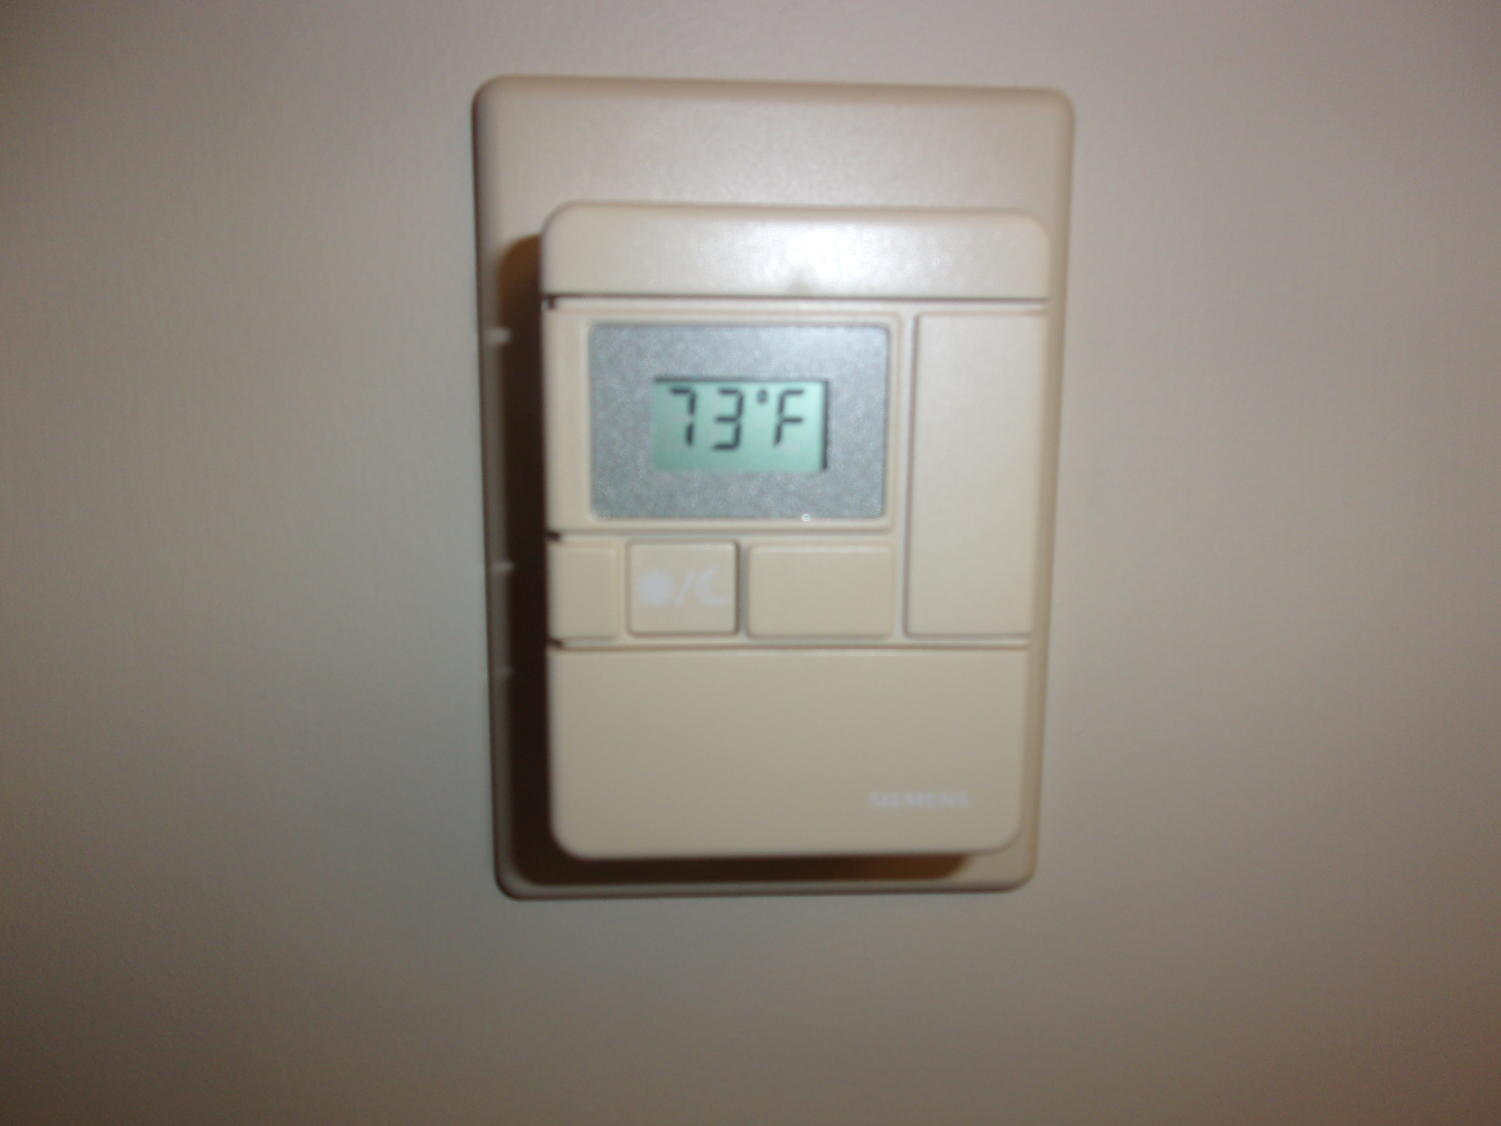 Woah!  The thermostat on February 23 says the temperature its 73 degrees.  The air coming out of the vents was 58 degrees. Photo taken by Chasity Brunner